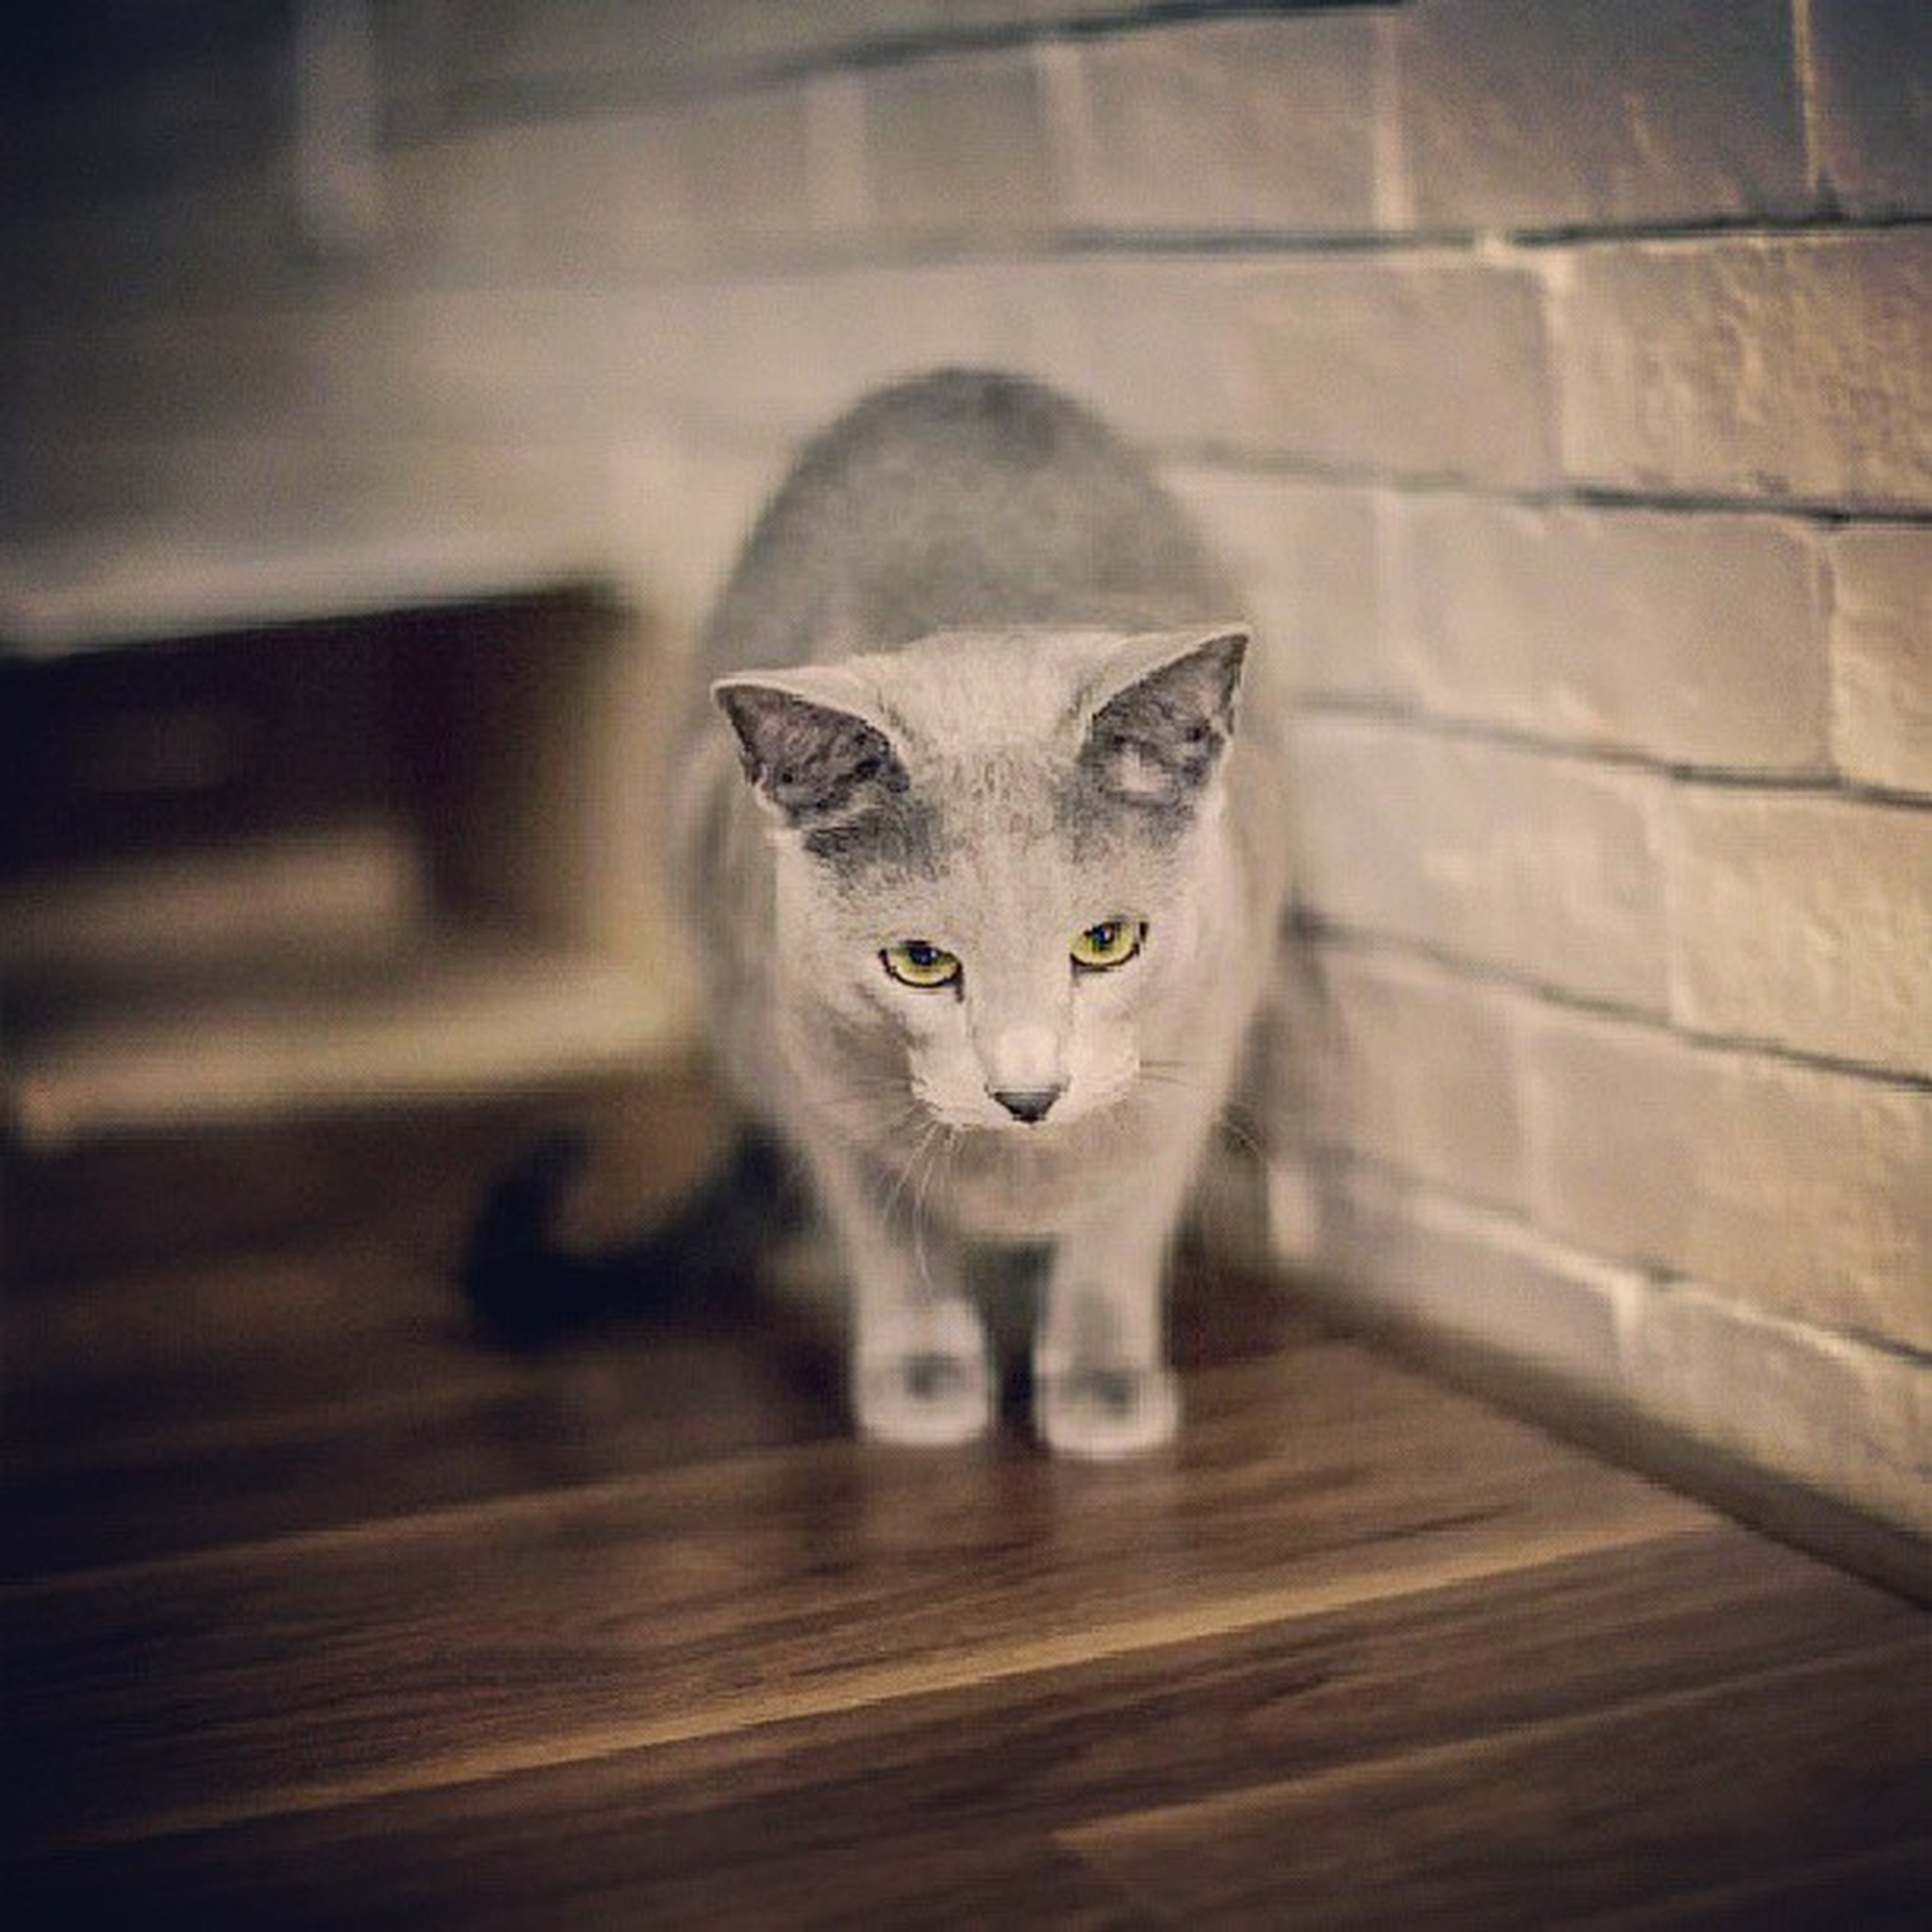 domestic cat, pets, cat, animal themes, domestic animals, looking at camera, portrait, one animal, feline, mammal, whisker, indoors, staring, alertness, front view, wood - material, sitting, close-up, animal eye, animal head